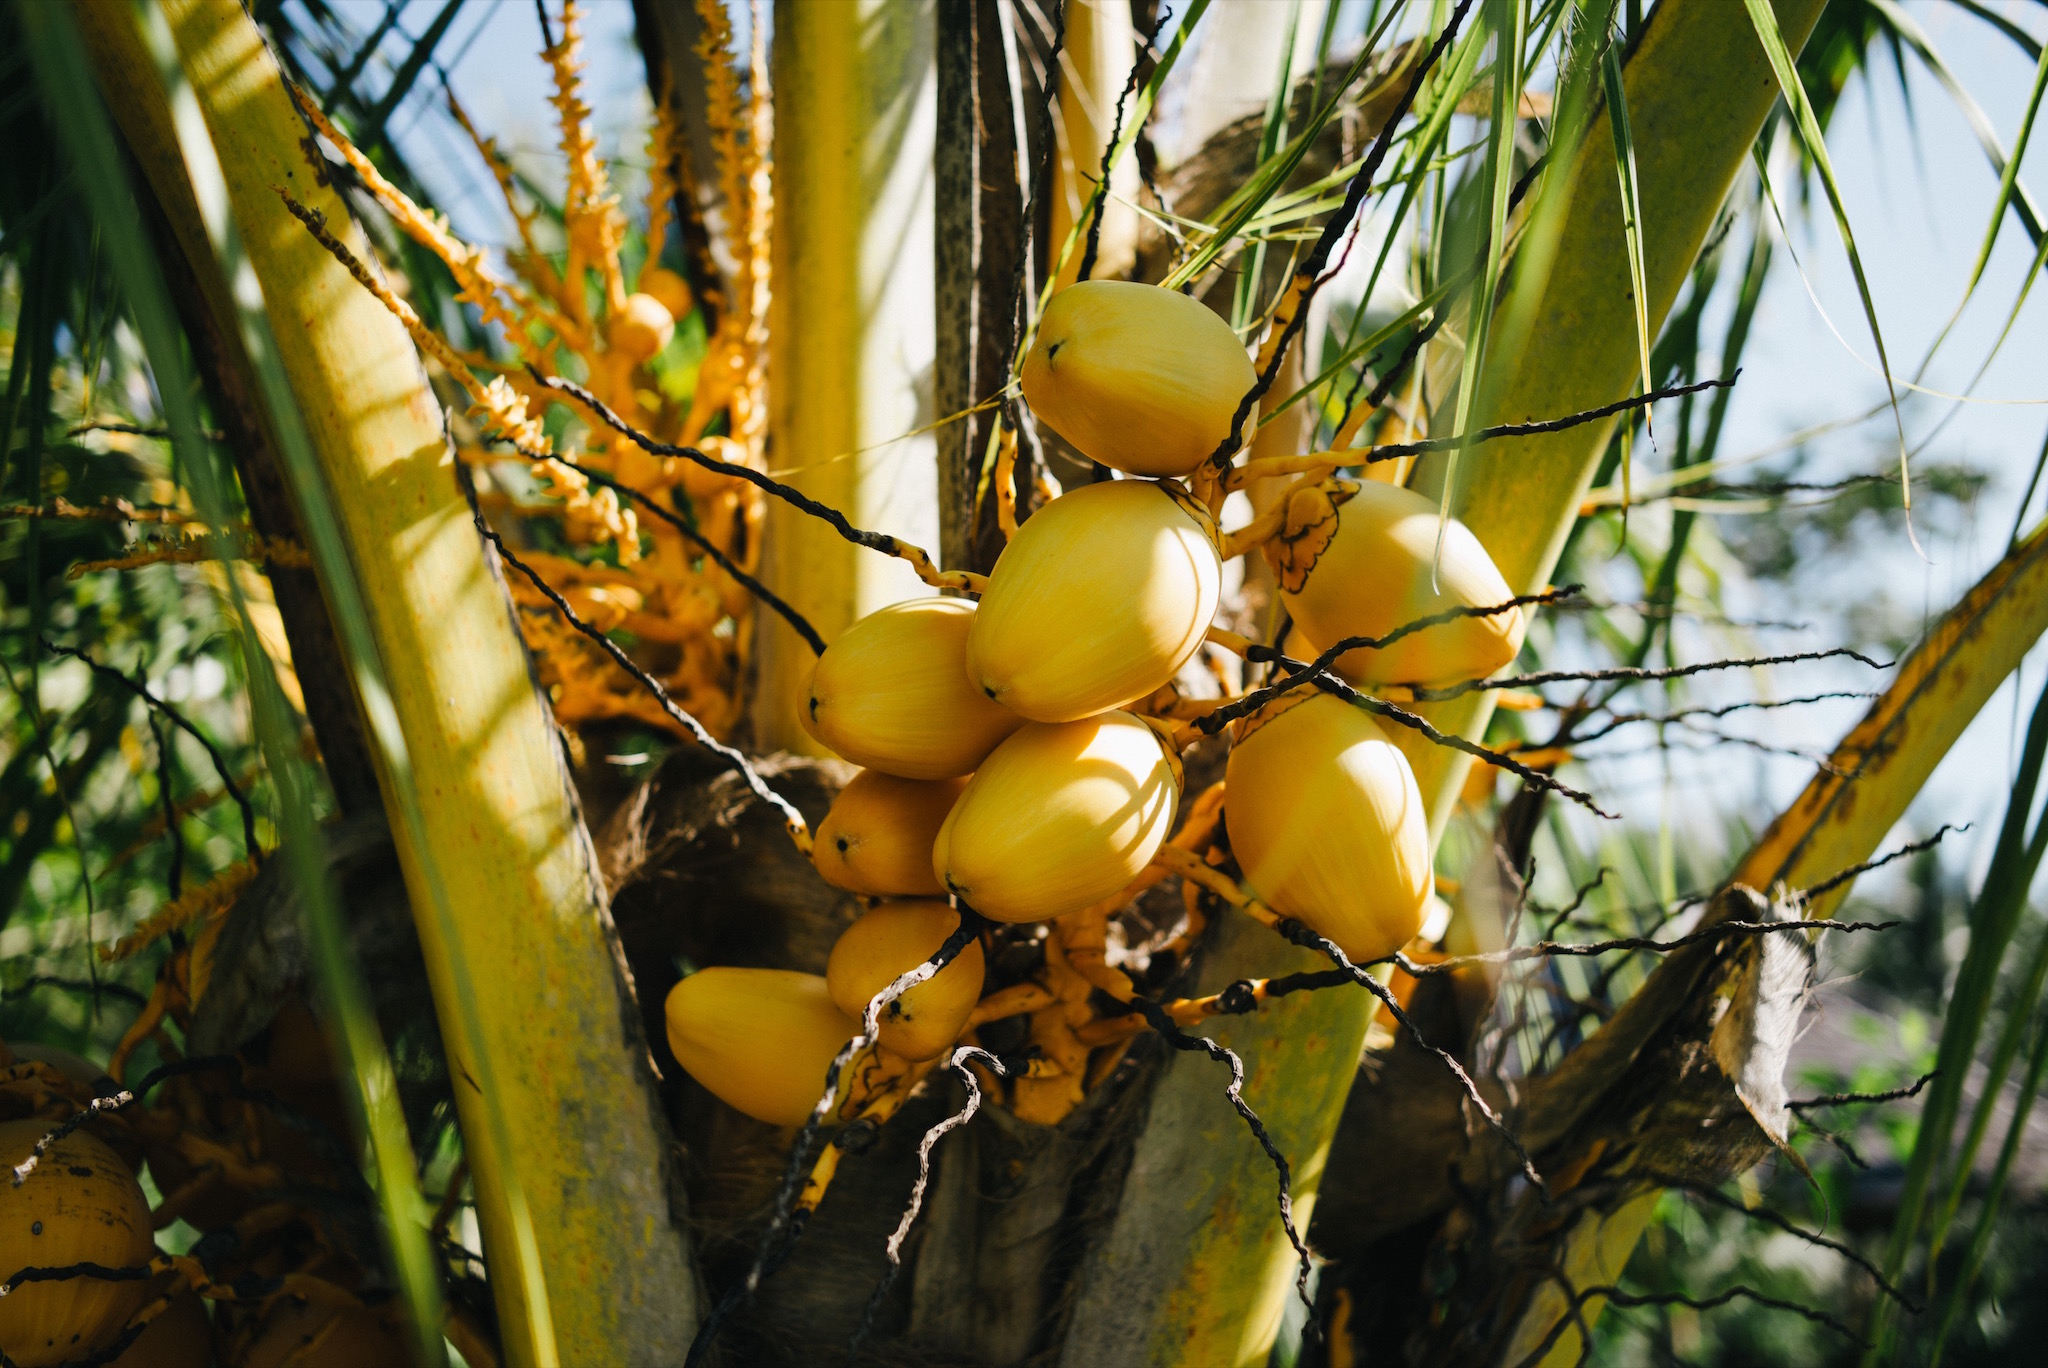 Yellow coconuts growing between the villas.